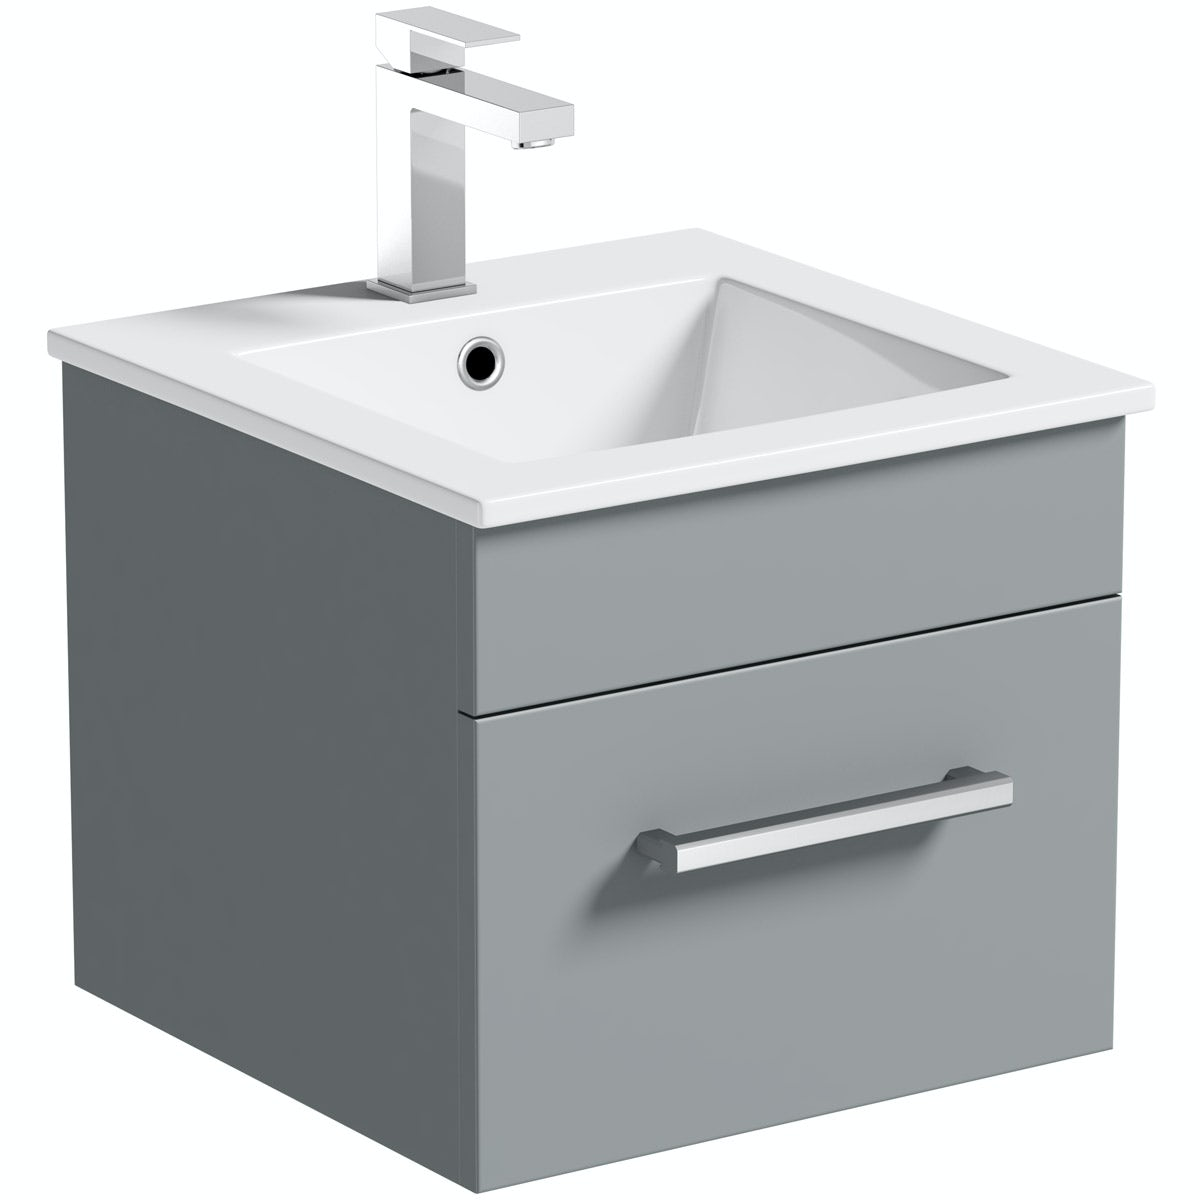 Orchard Derwent stone grey wall hung vanity unit and basin 420mm